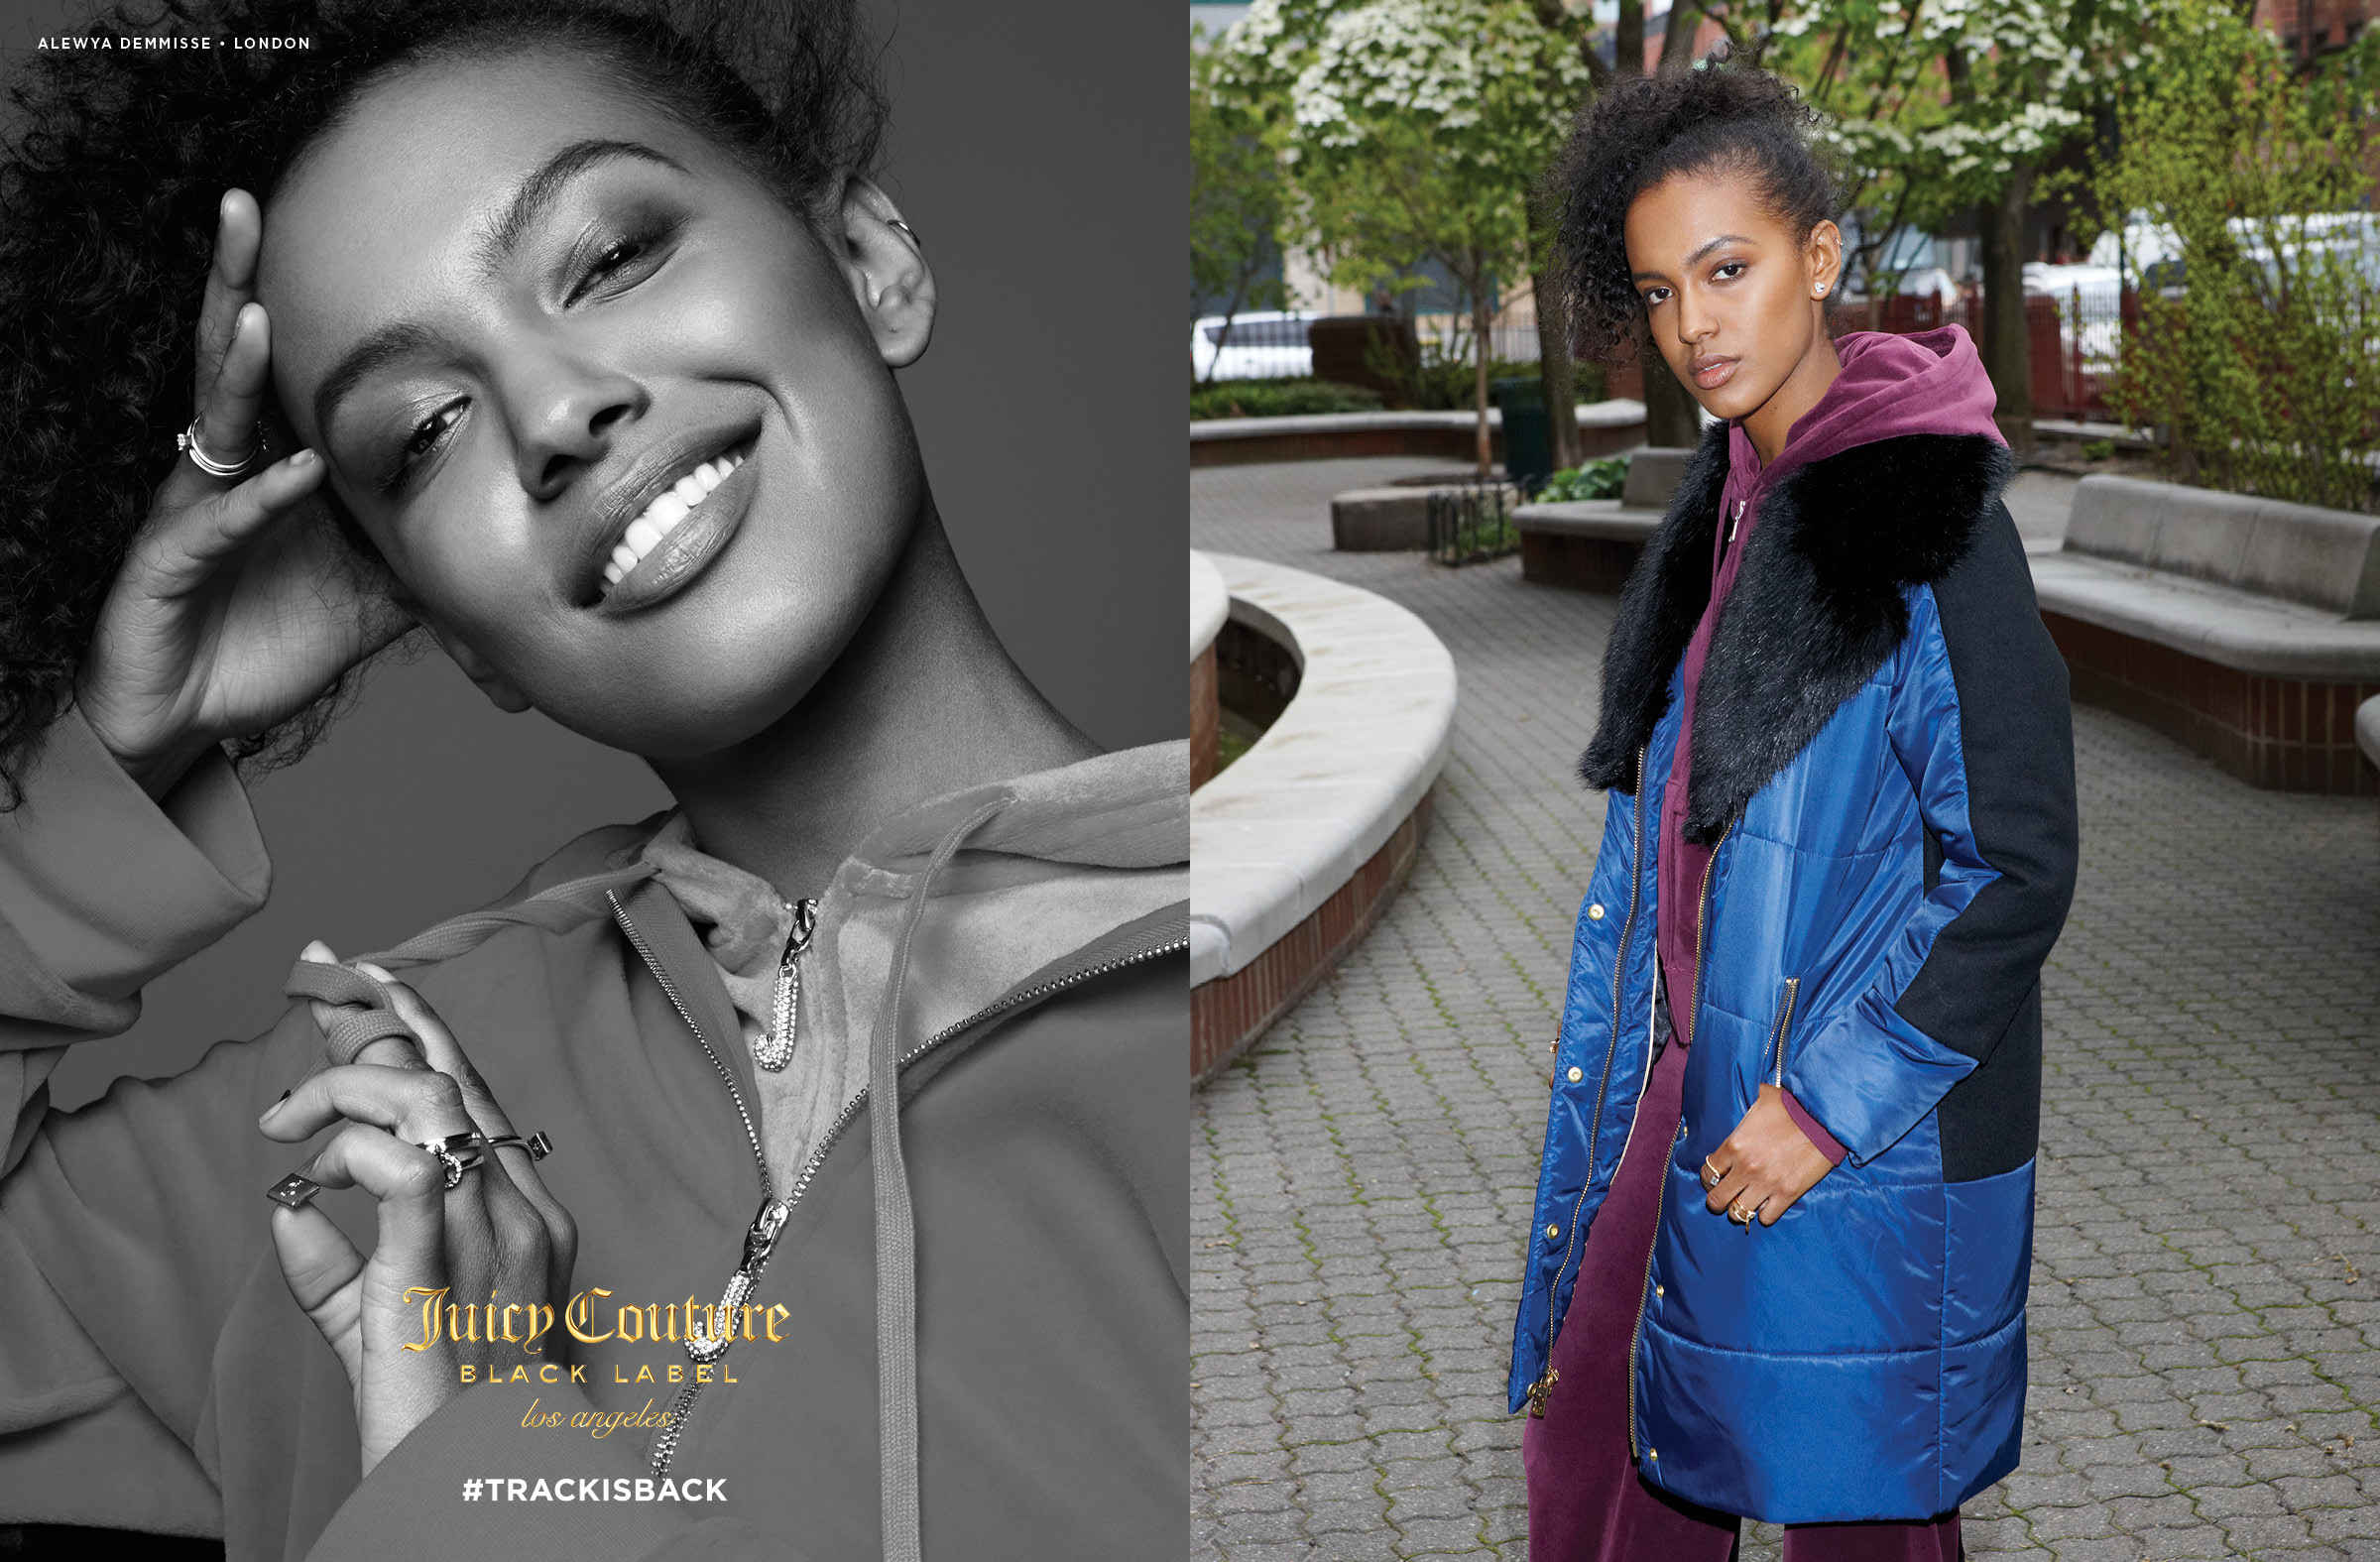 7bc5159436 The spirit of the 90s is alive in this Juicy Couture campaign that is 100%  dedicated to the tracksuit